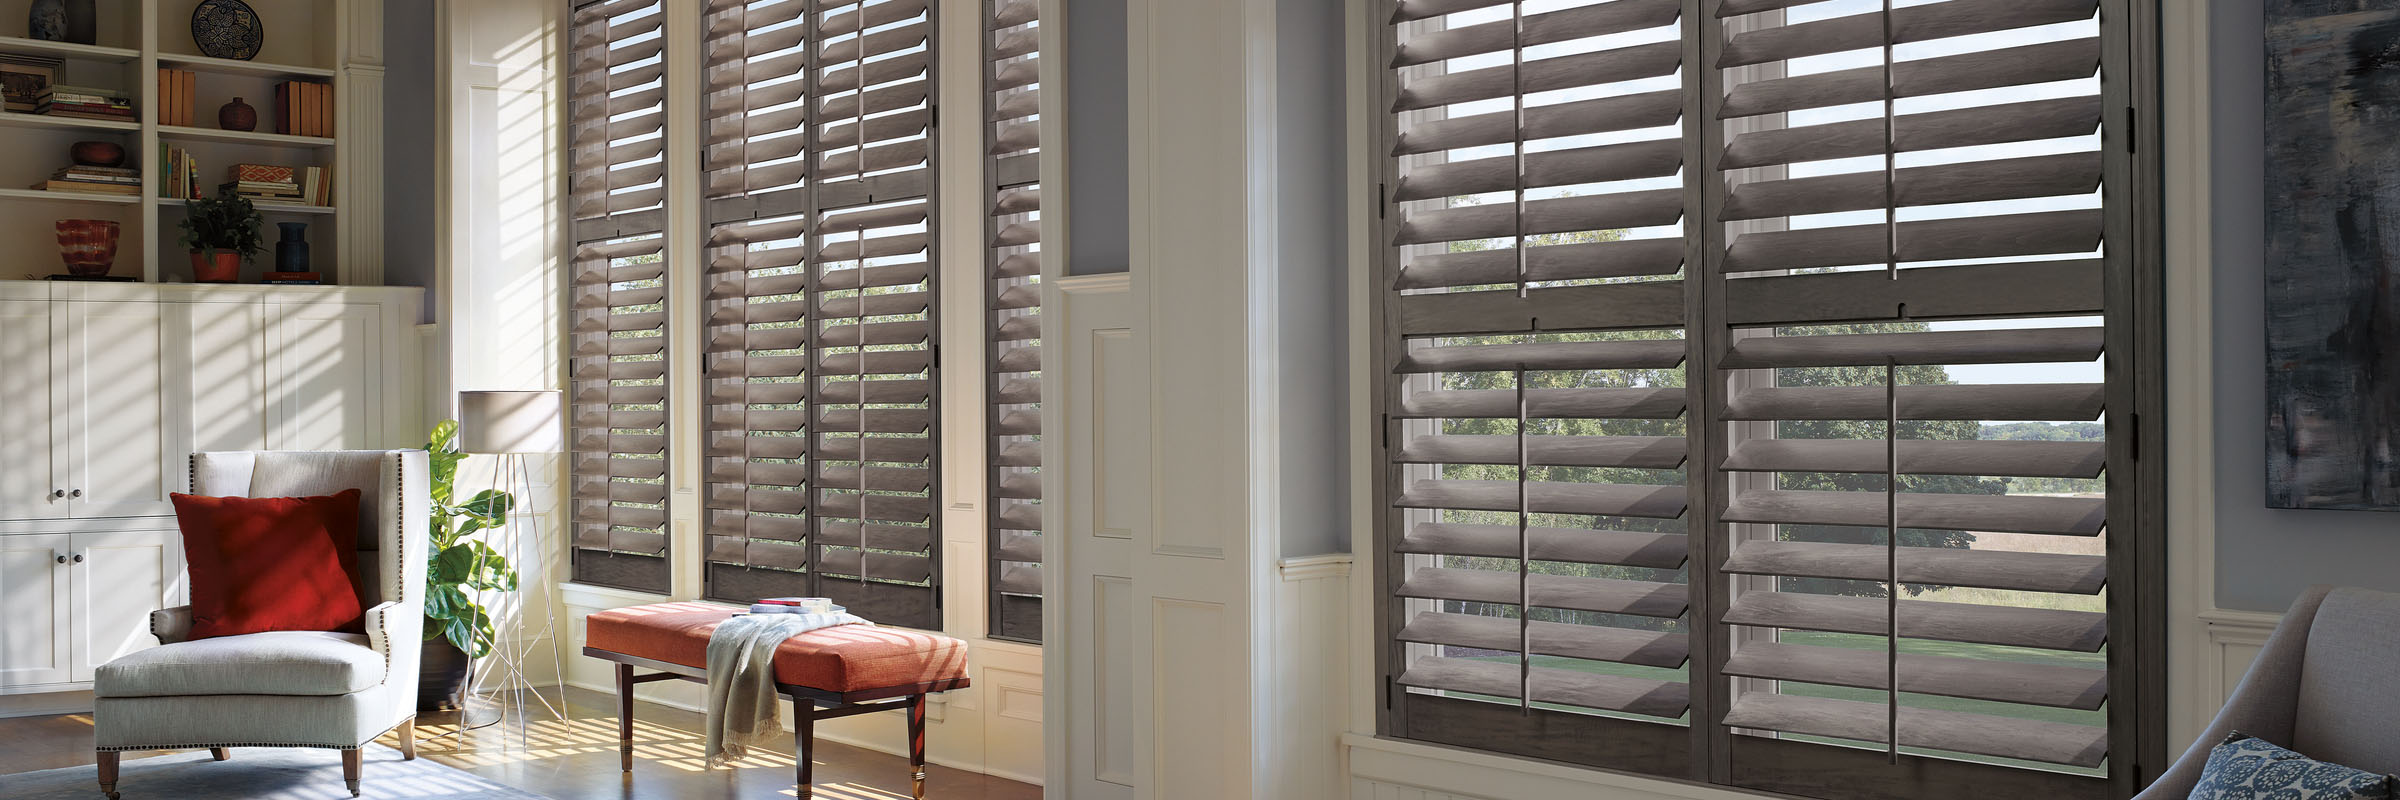 shades california blinds arizona az in shutters lake ca polycore city havasu